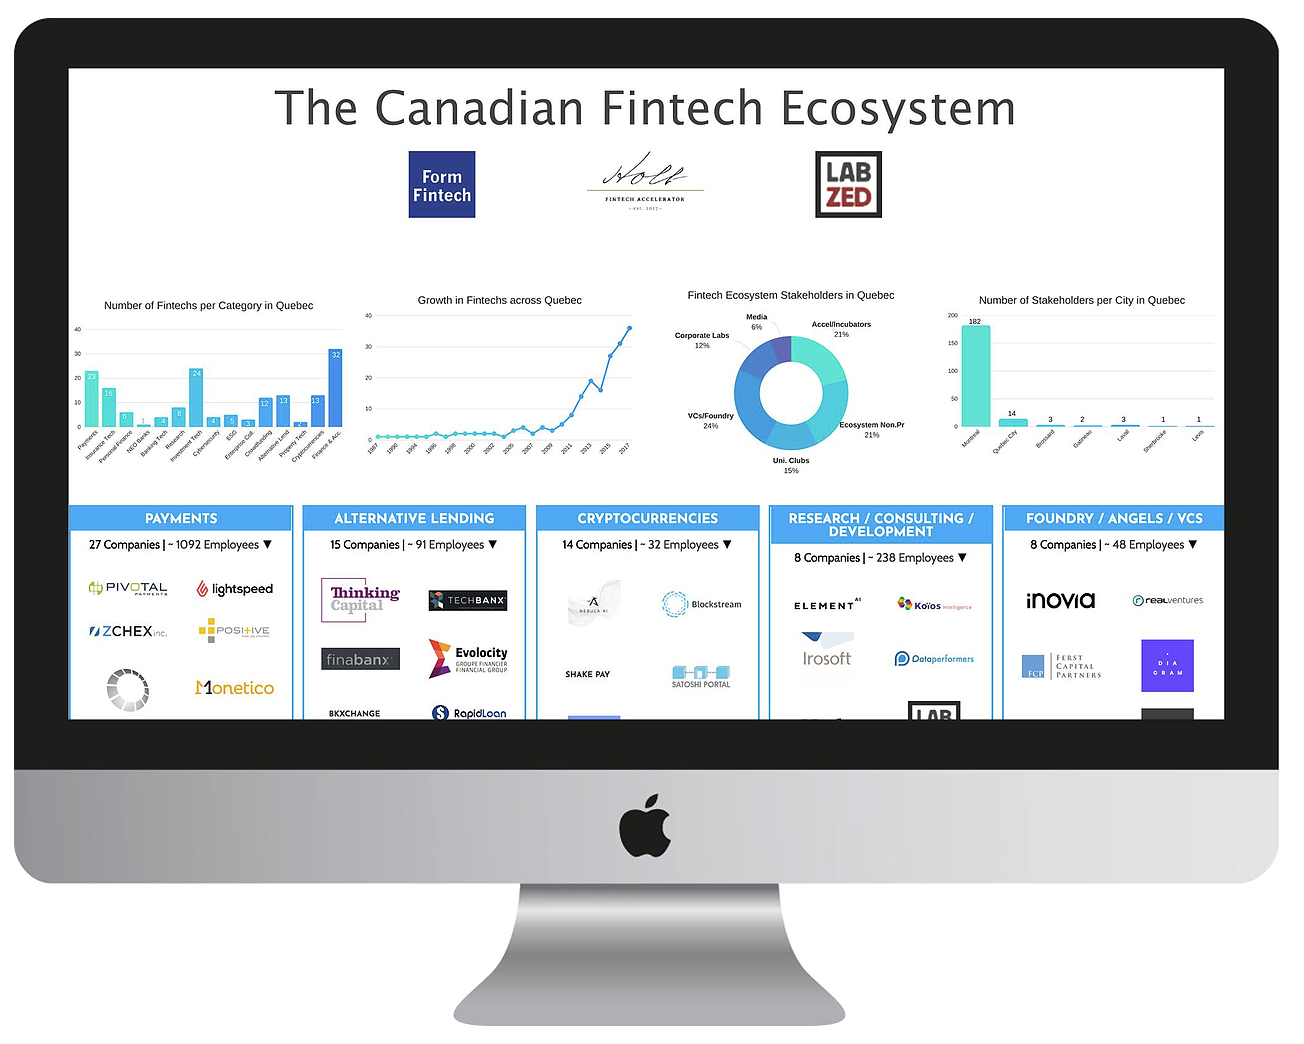 Canada's first fintech ecosystem map created by FormFintech in partnership with Holt Fintech Acclerator and in collaboration with LabZed  (click picture to access)